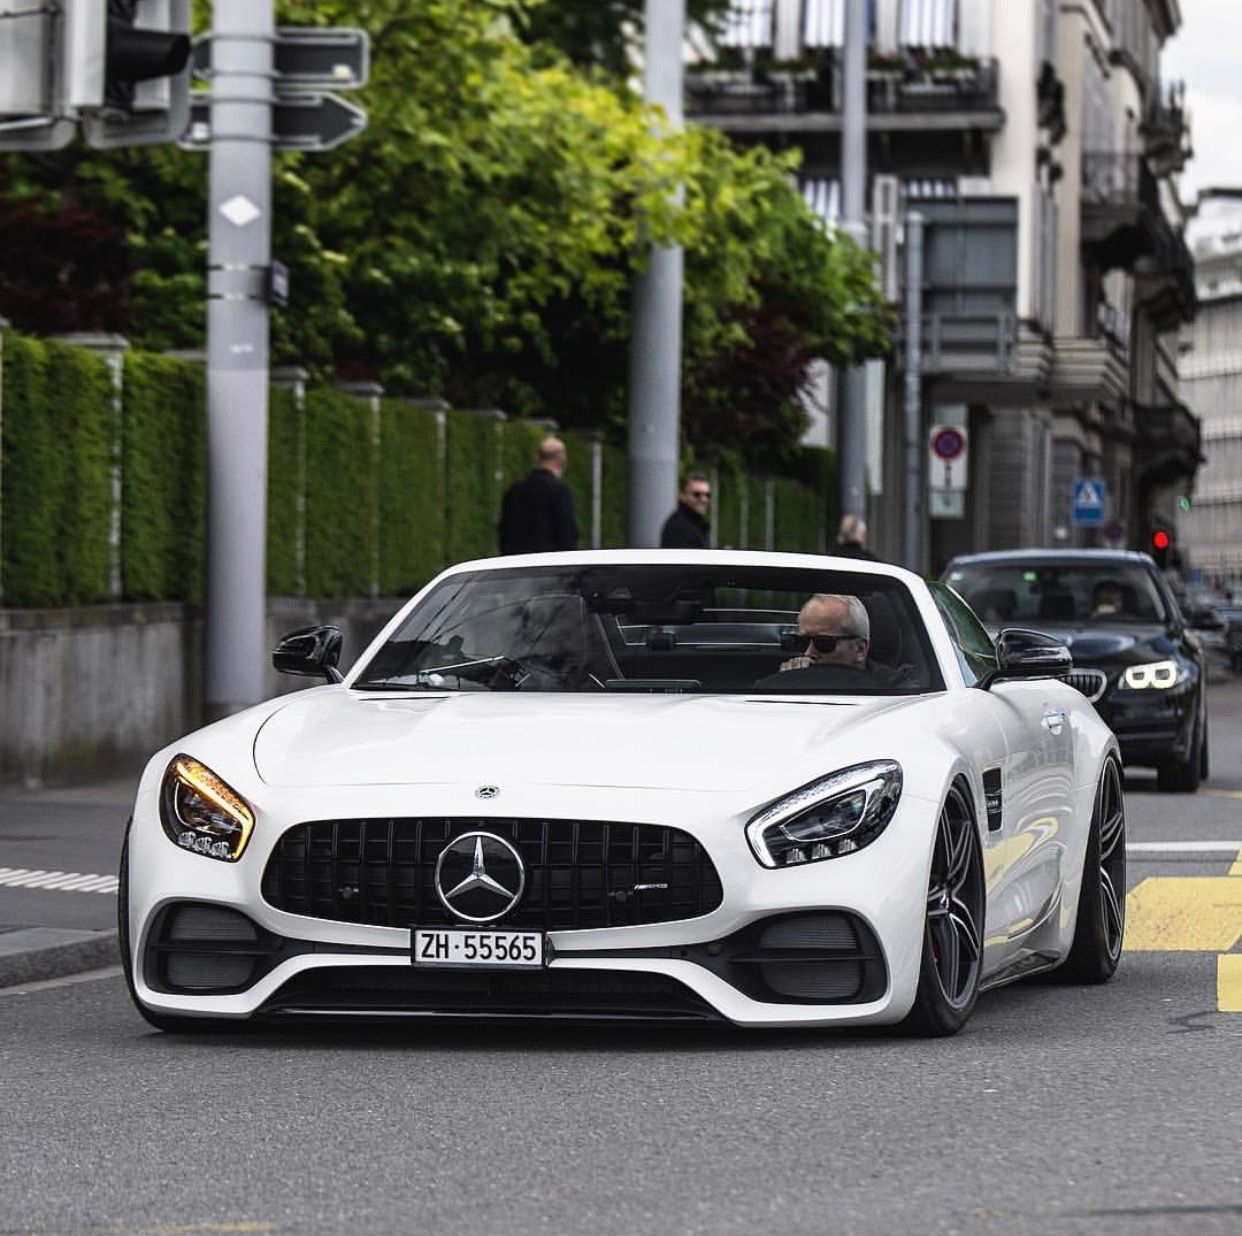 Mercedes Amg Gt C Painted In White Photo Taken By Srs Swissrichstreets On Instagram Mercedes Amg Sports Cars Luxury Mercedes